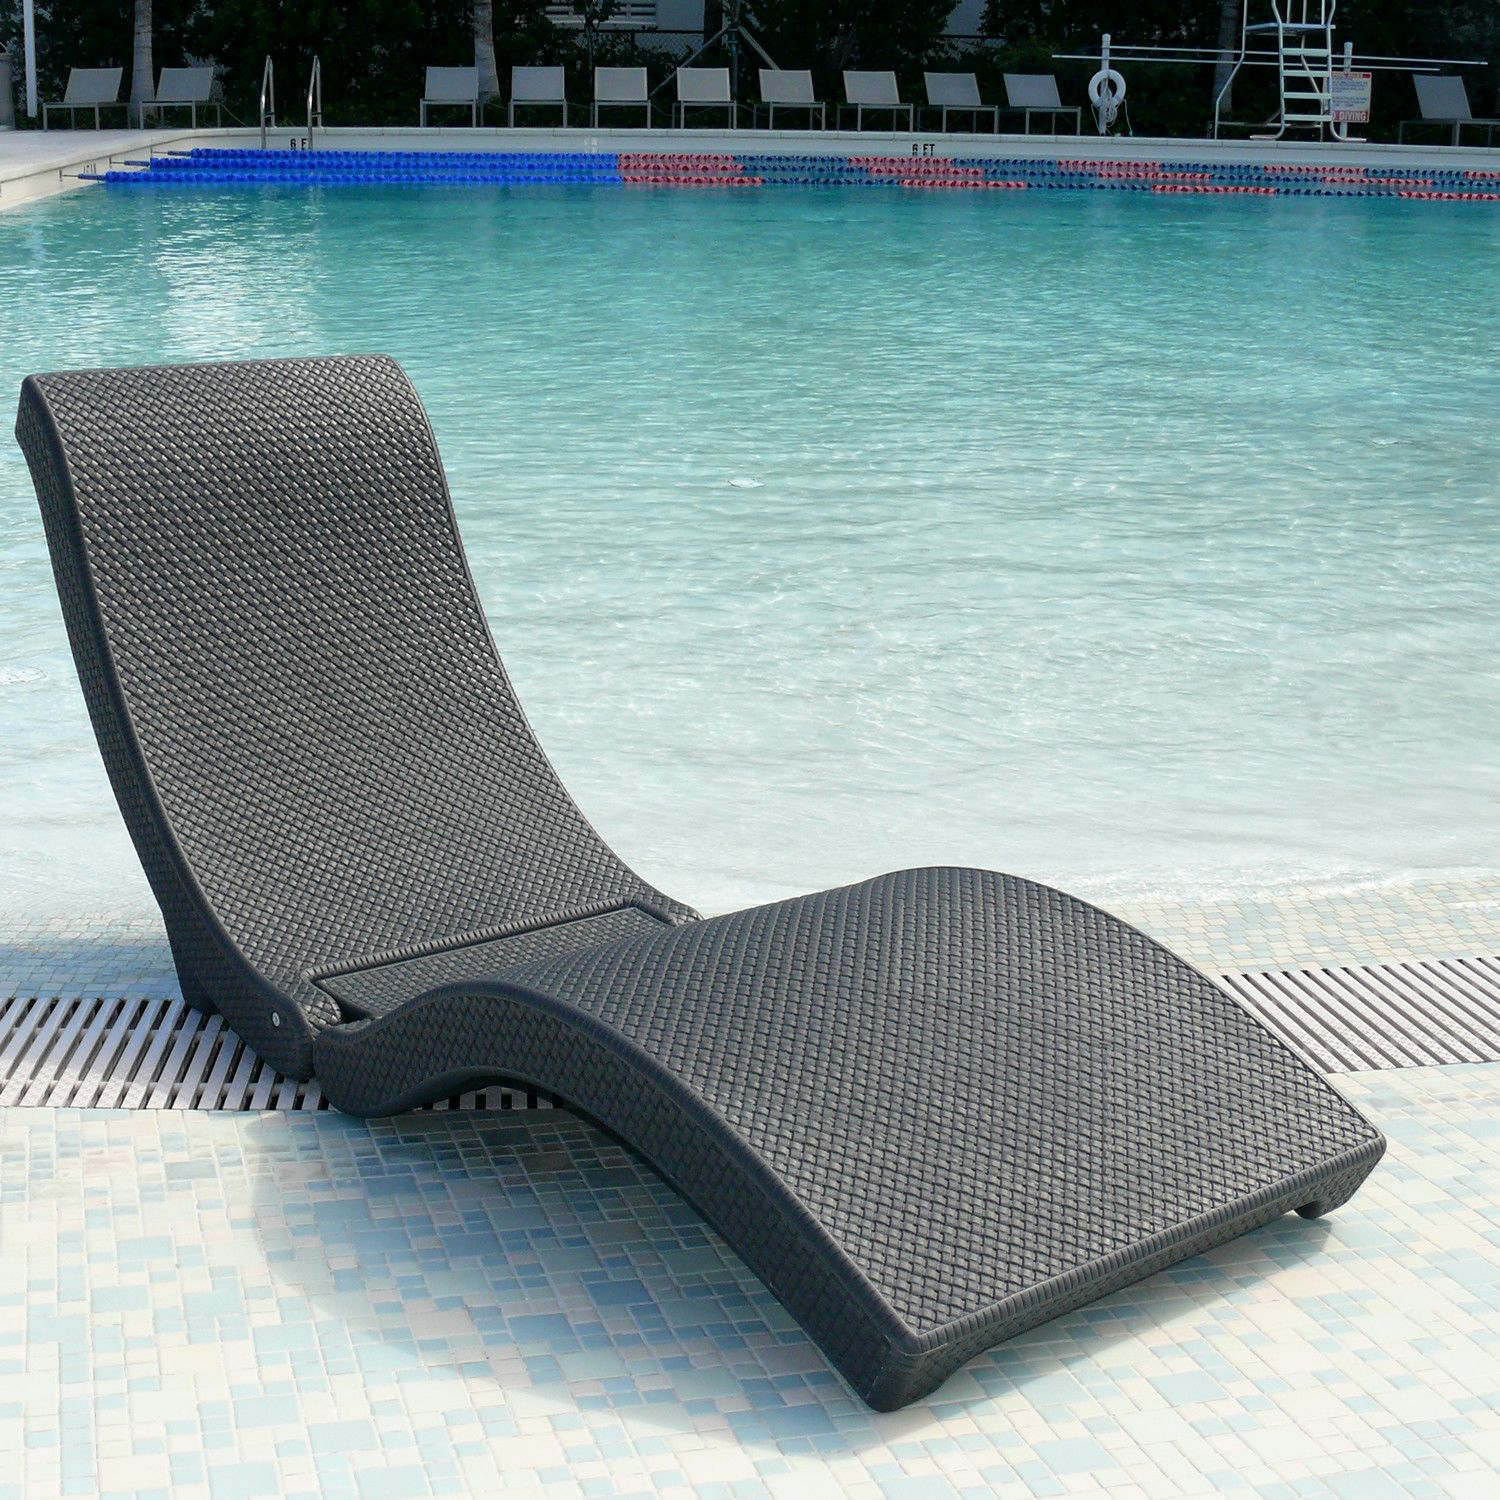 Water in pool chaise lounge chairs outdoor furniture for Outdoor pool furniture